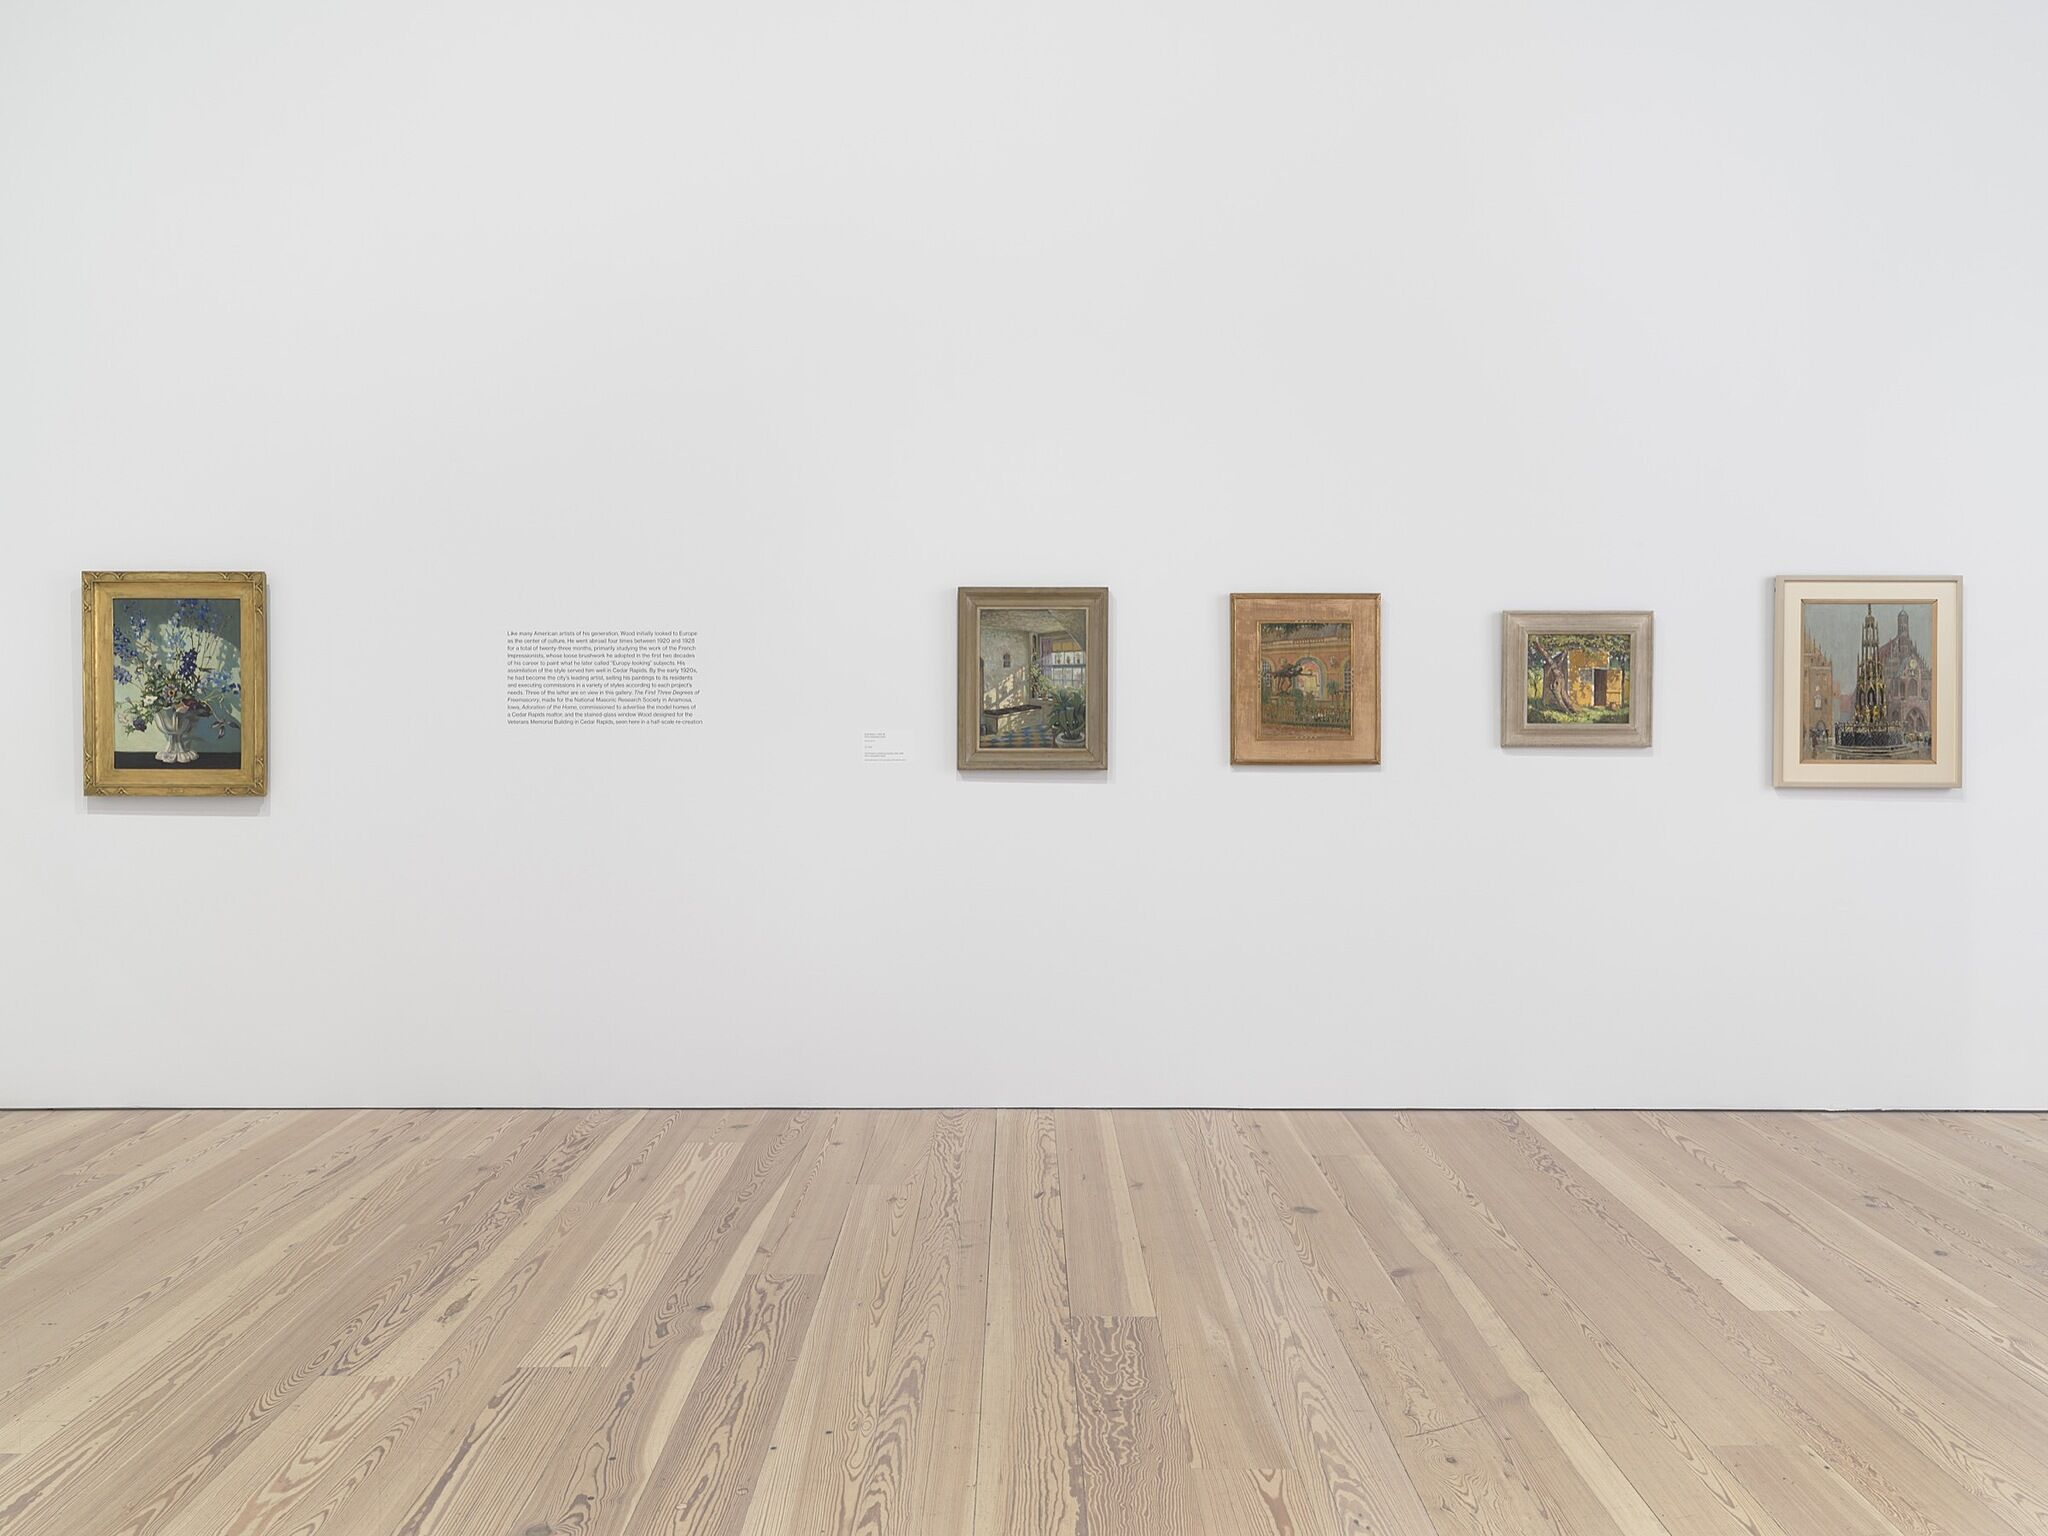 Five small vertical paintings on a white gallery wall.